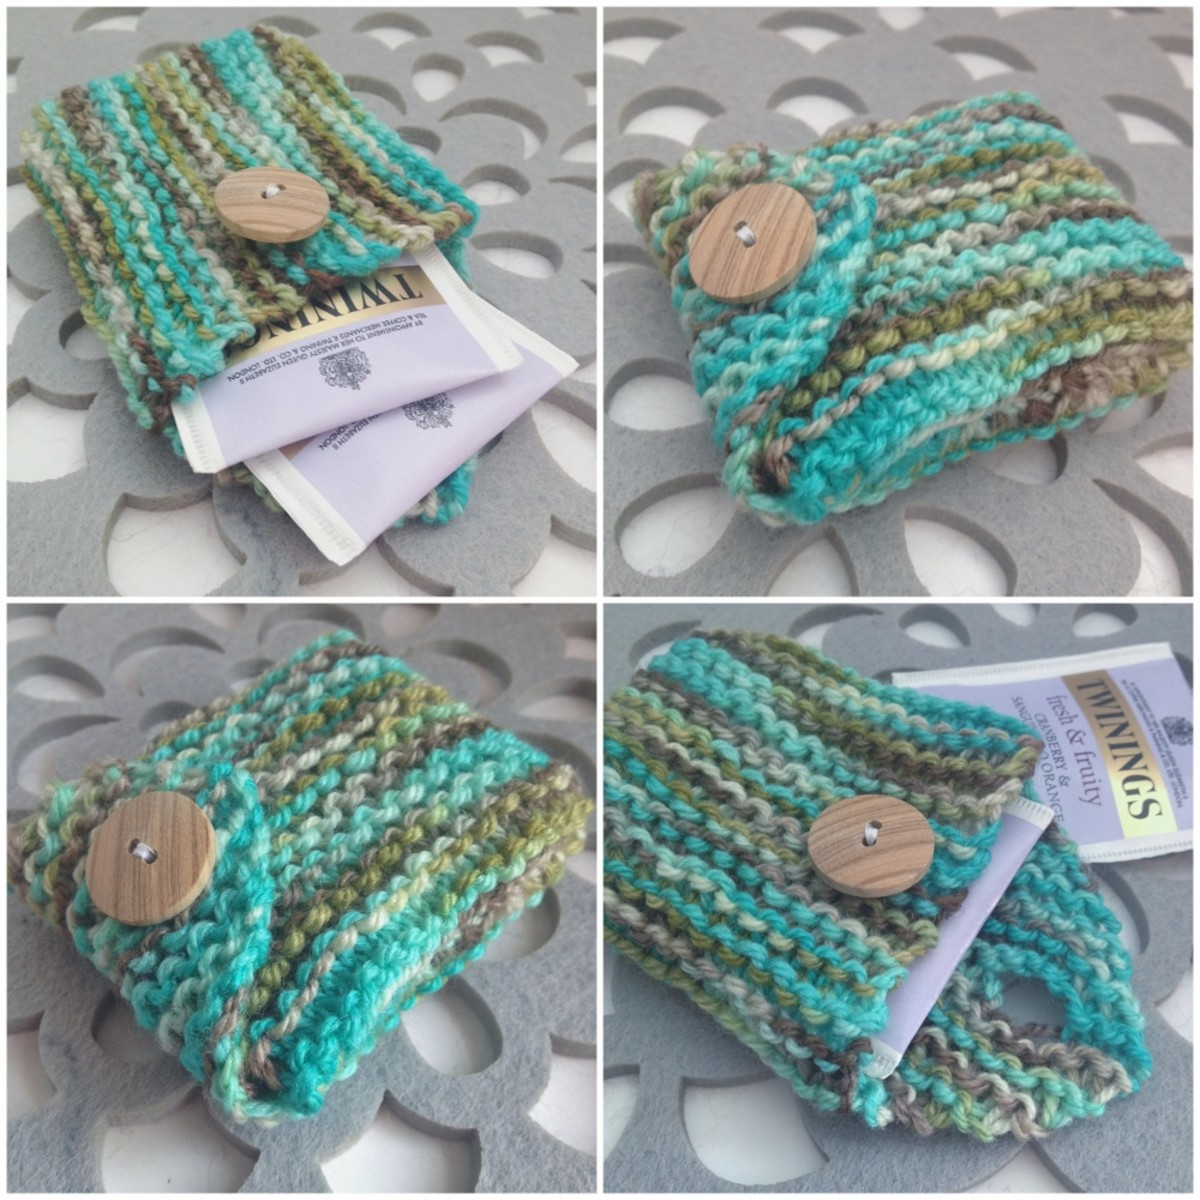 Free Tea Bag Caddy Knitting Pattern | FeltMagnet